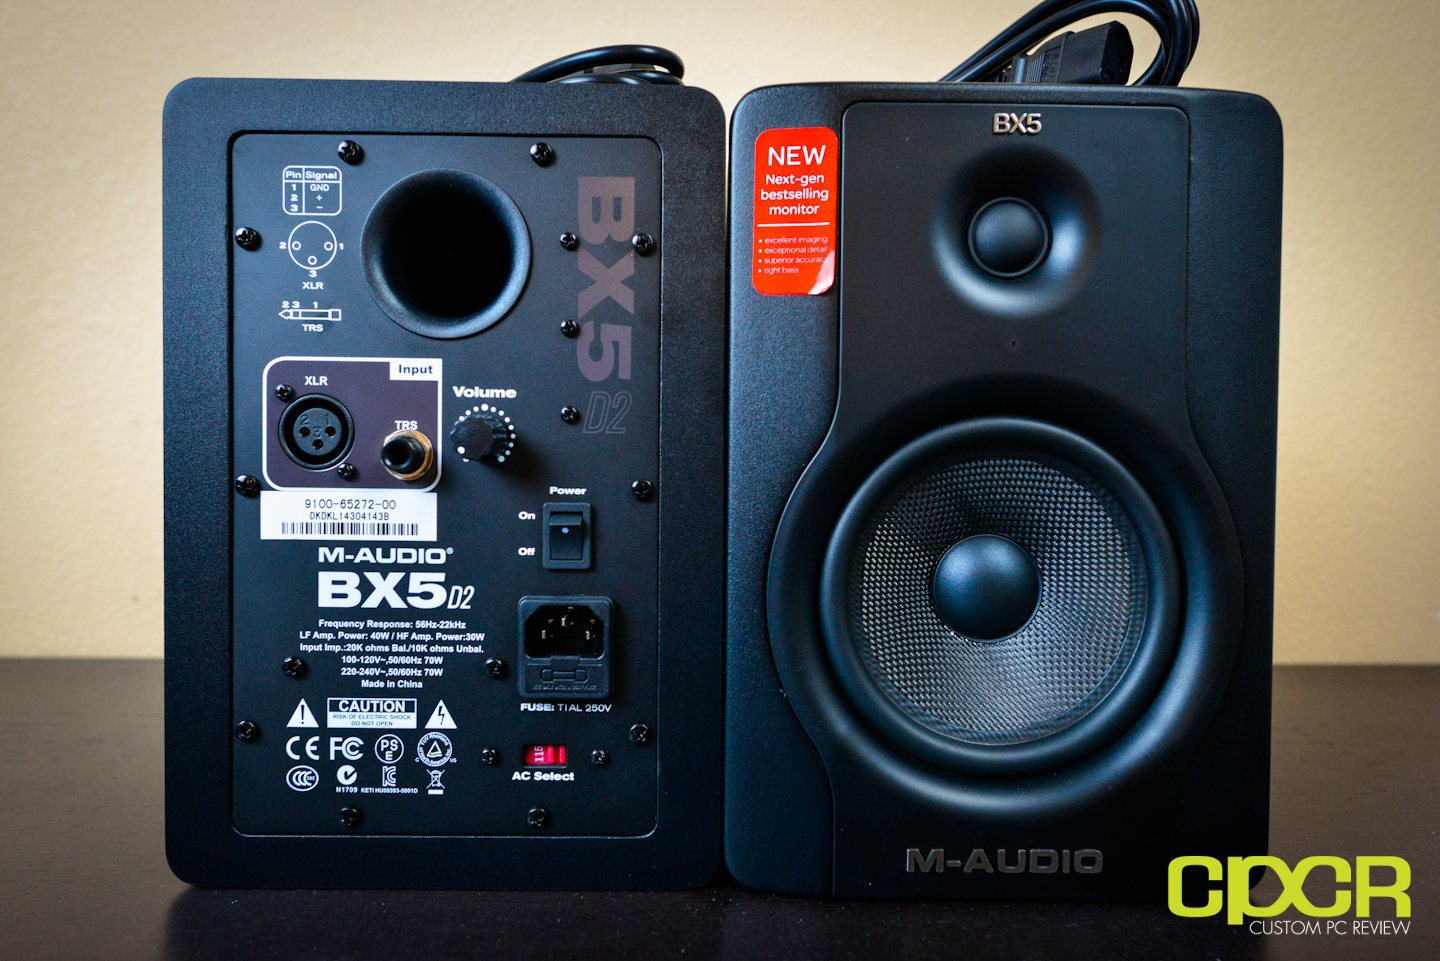 m-audio-bx5-d2-studio-monitors-custom-pc-review-7.jpg